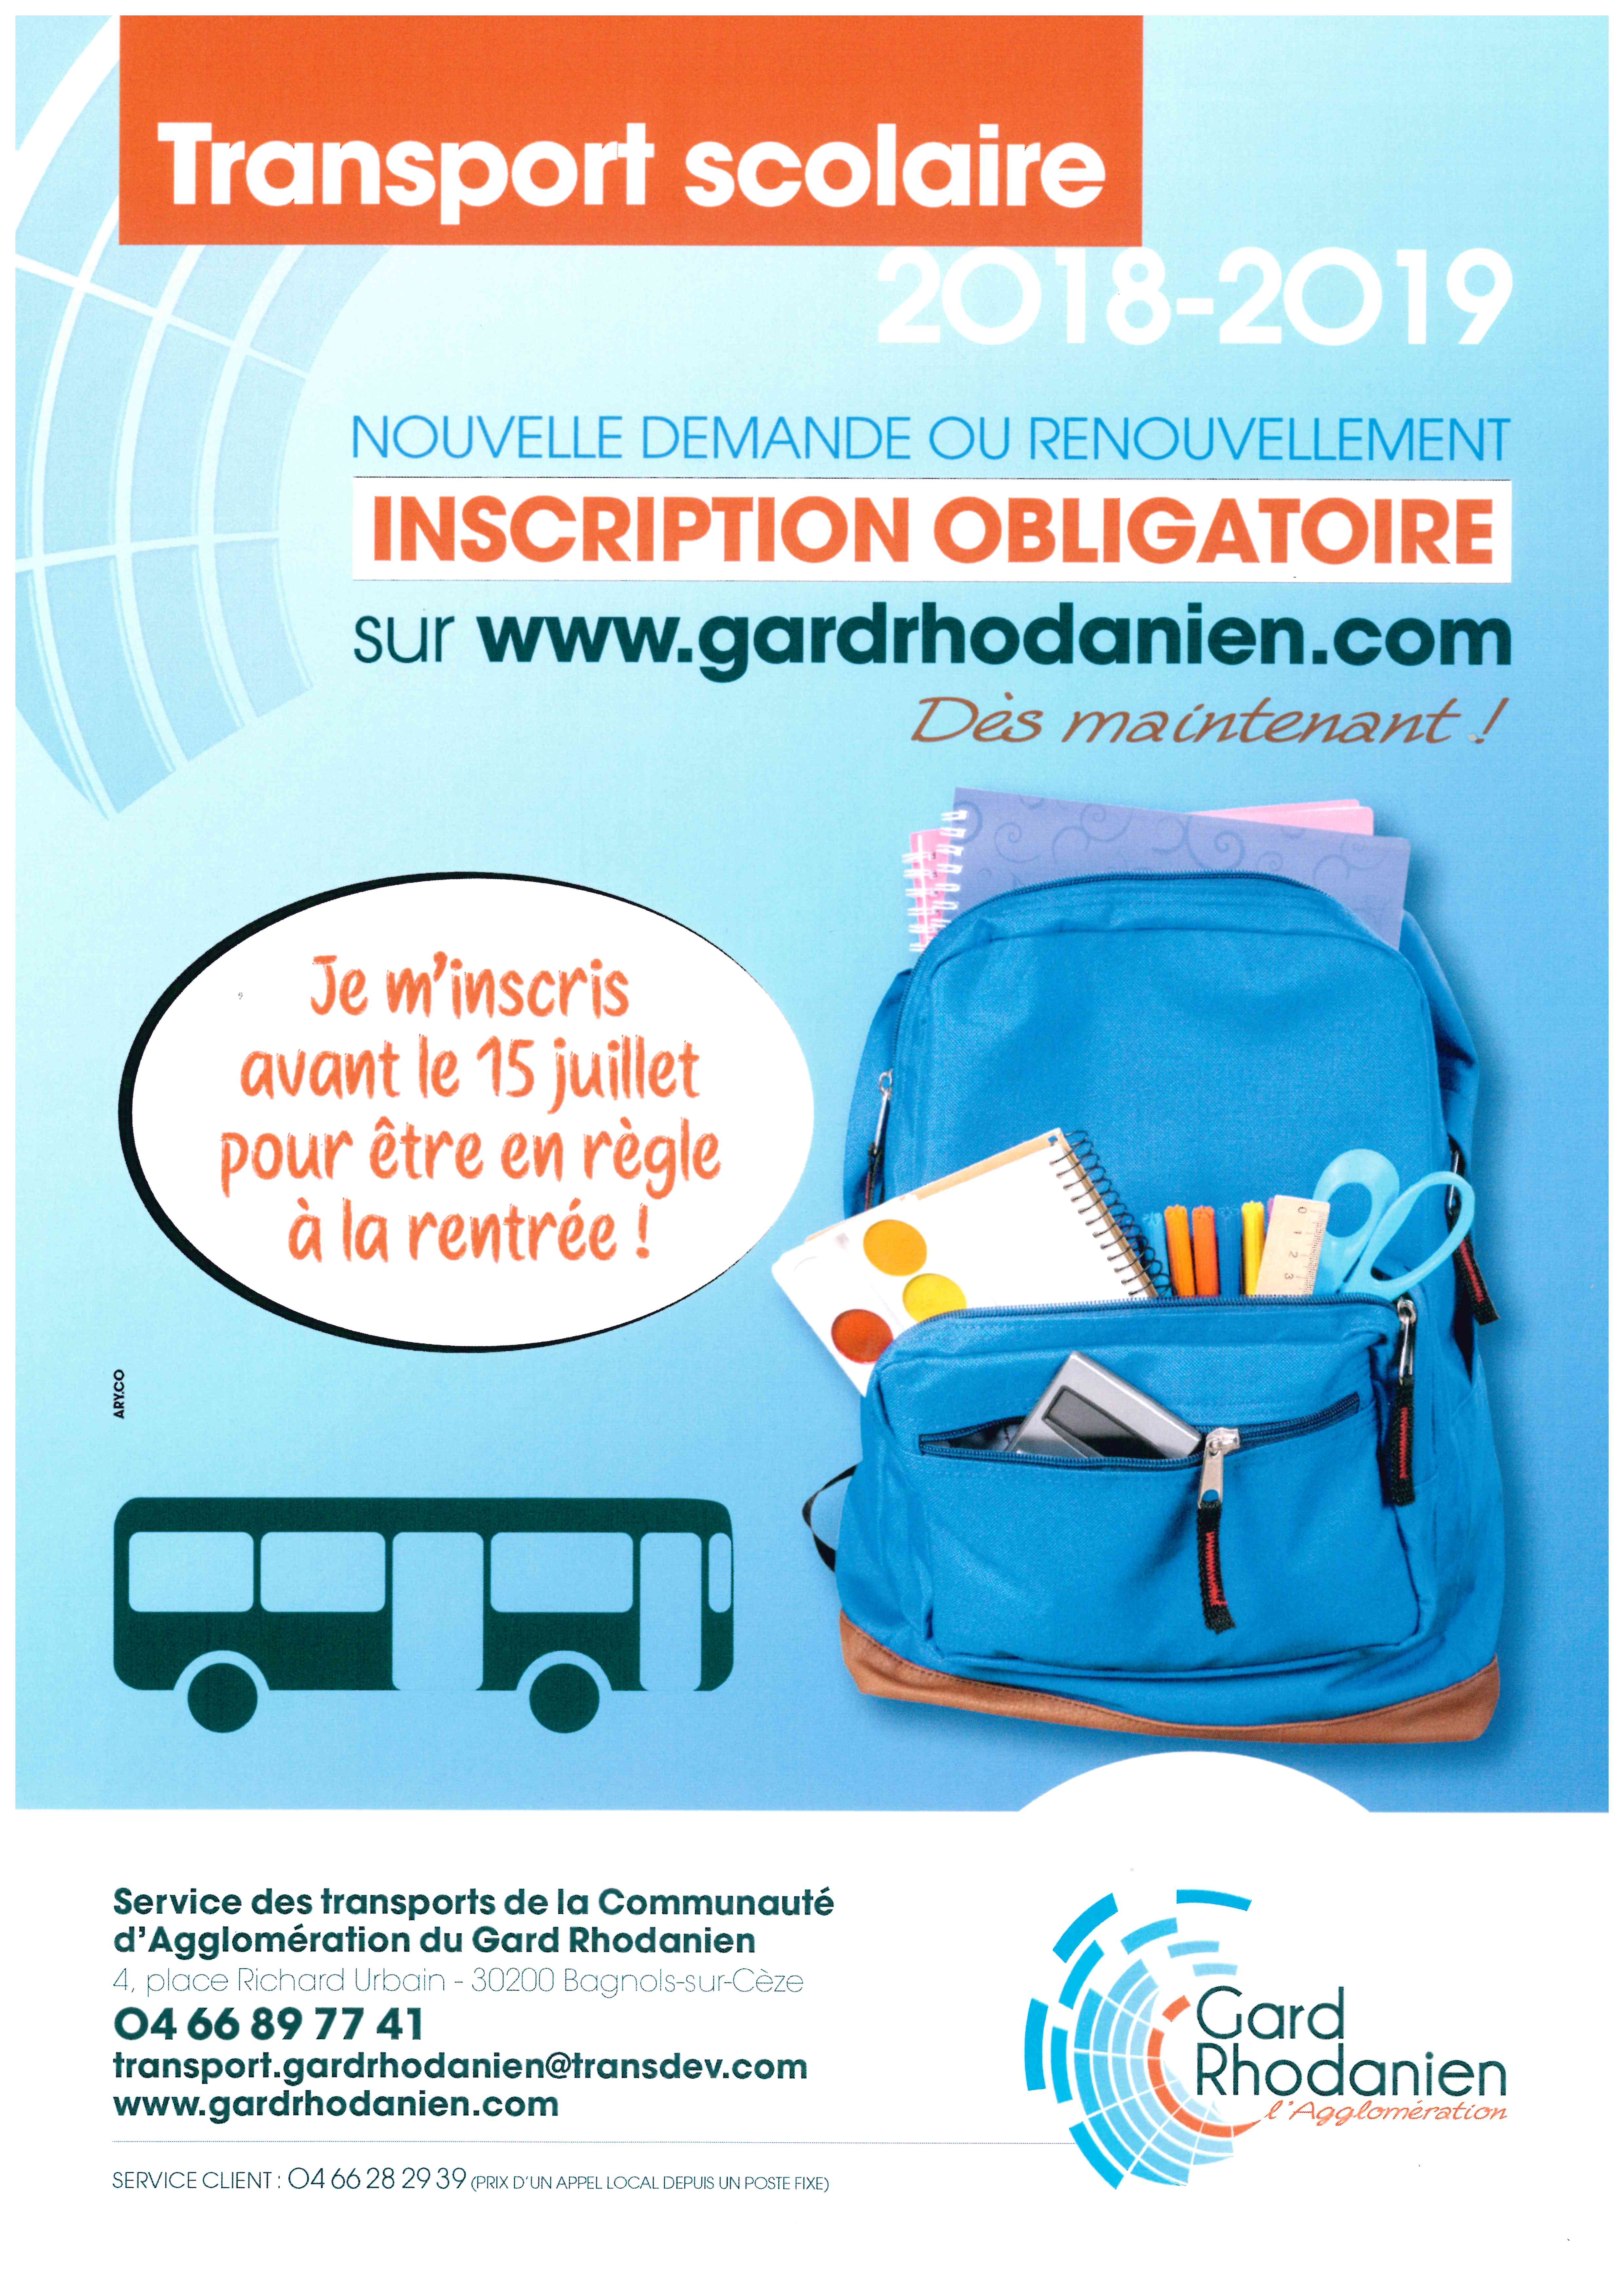 transport scolaire 2018 2019